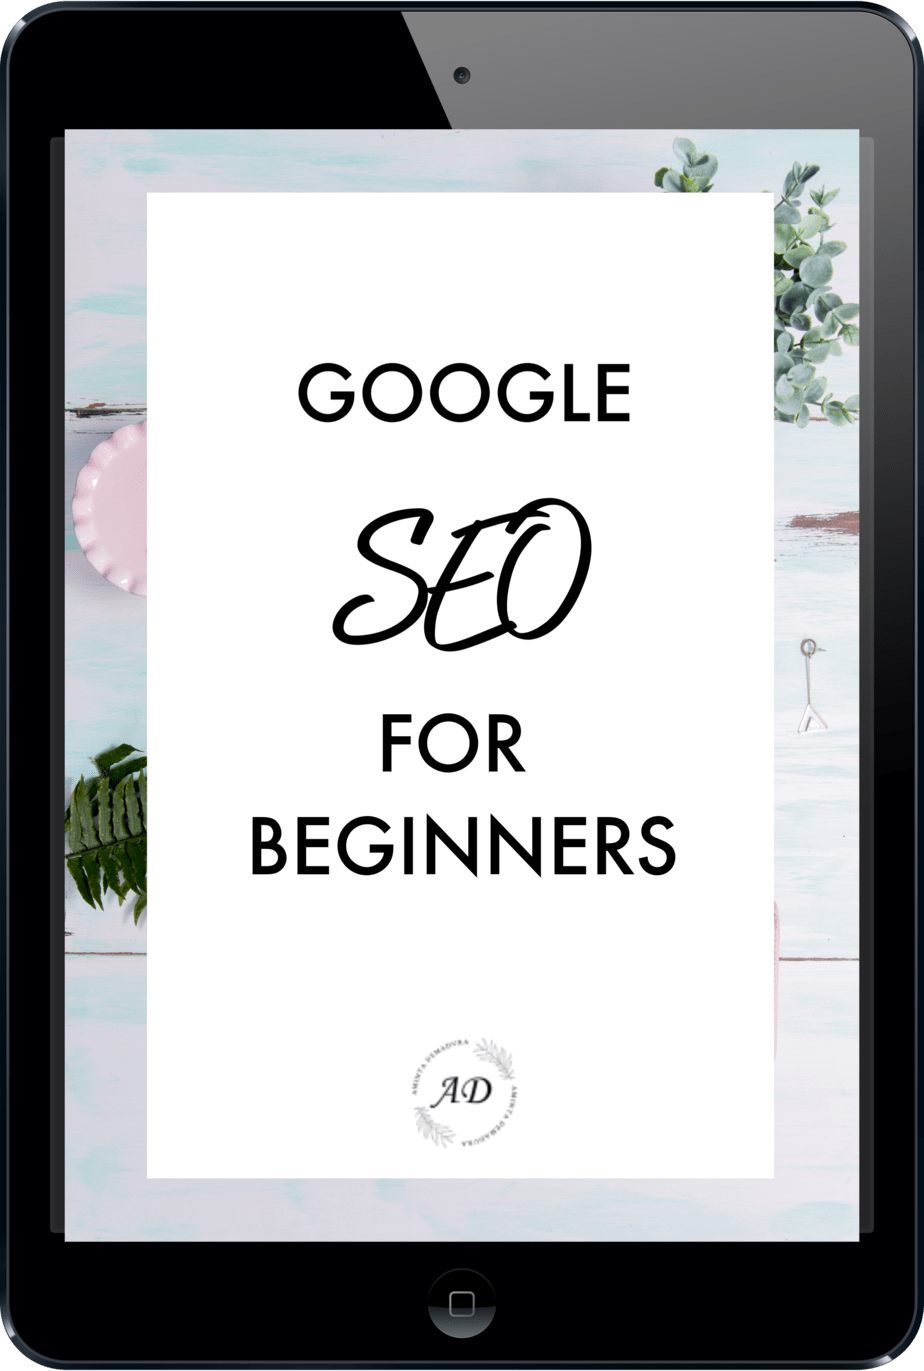 GOOGLE SEO FOR BEGINNERS GUIDE